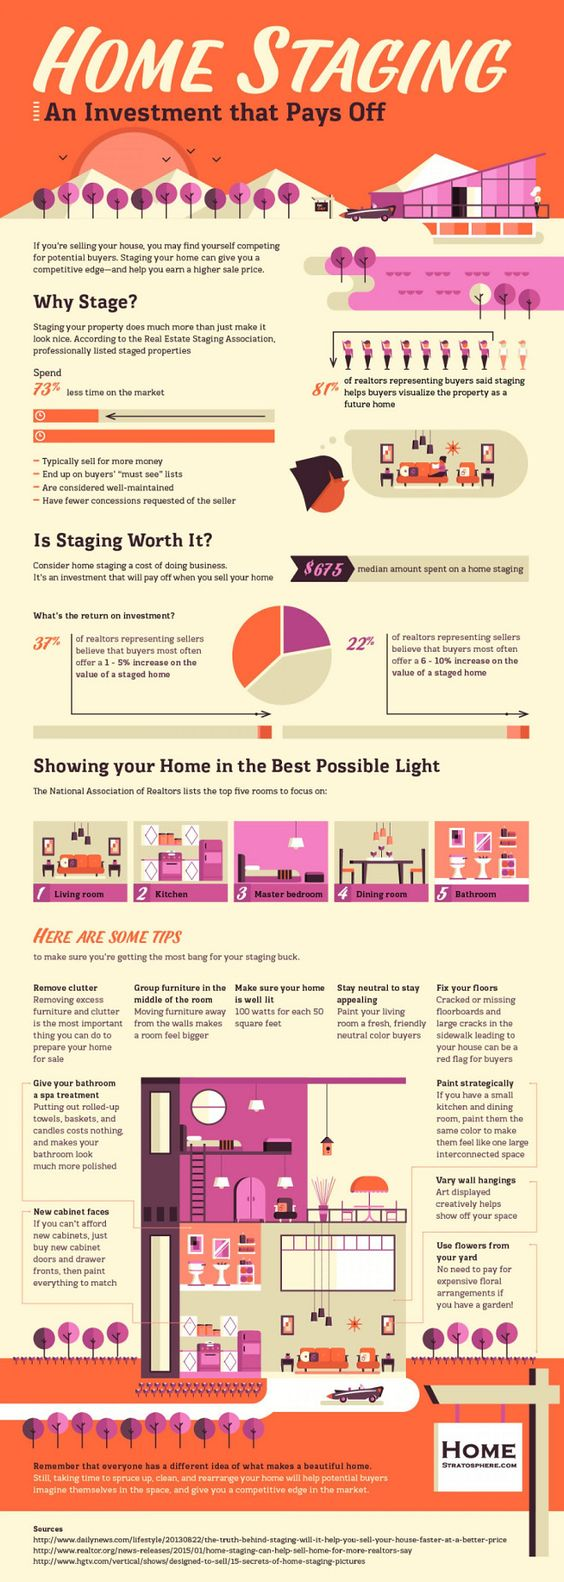 interior design internships nj - Home staging, Staging and Home staging tips on Pinterest